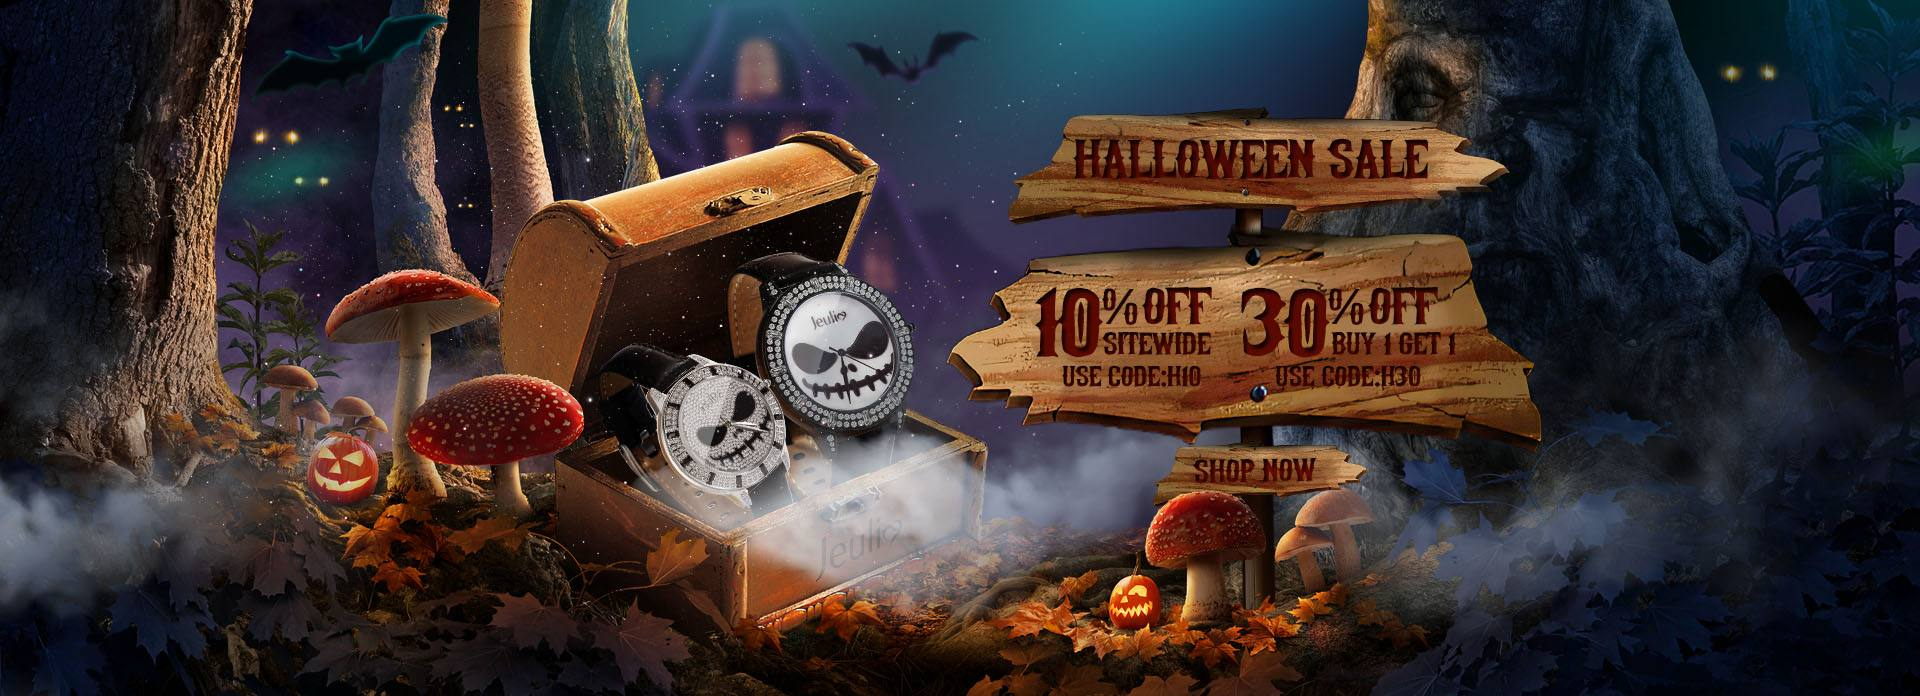 Jeulia Halloween Sale 2020 launched with Great deals on Jewelry